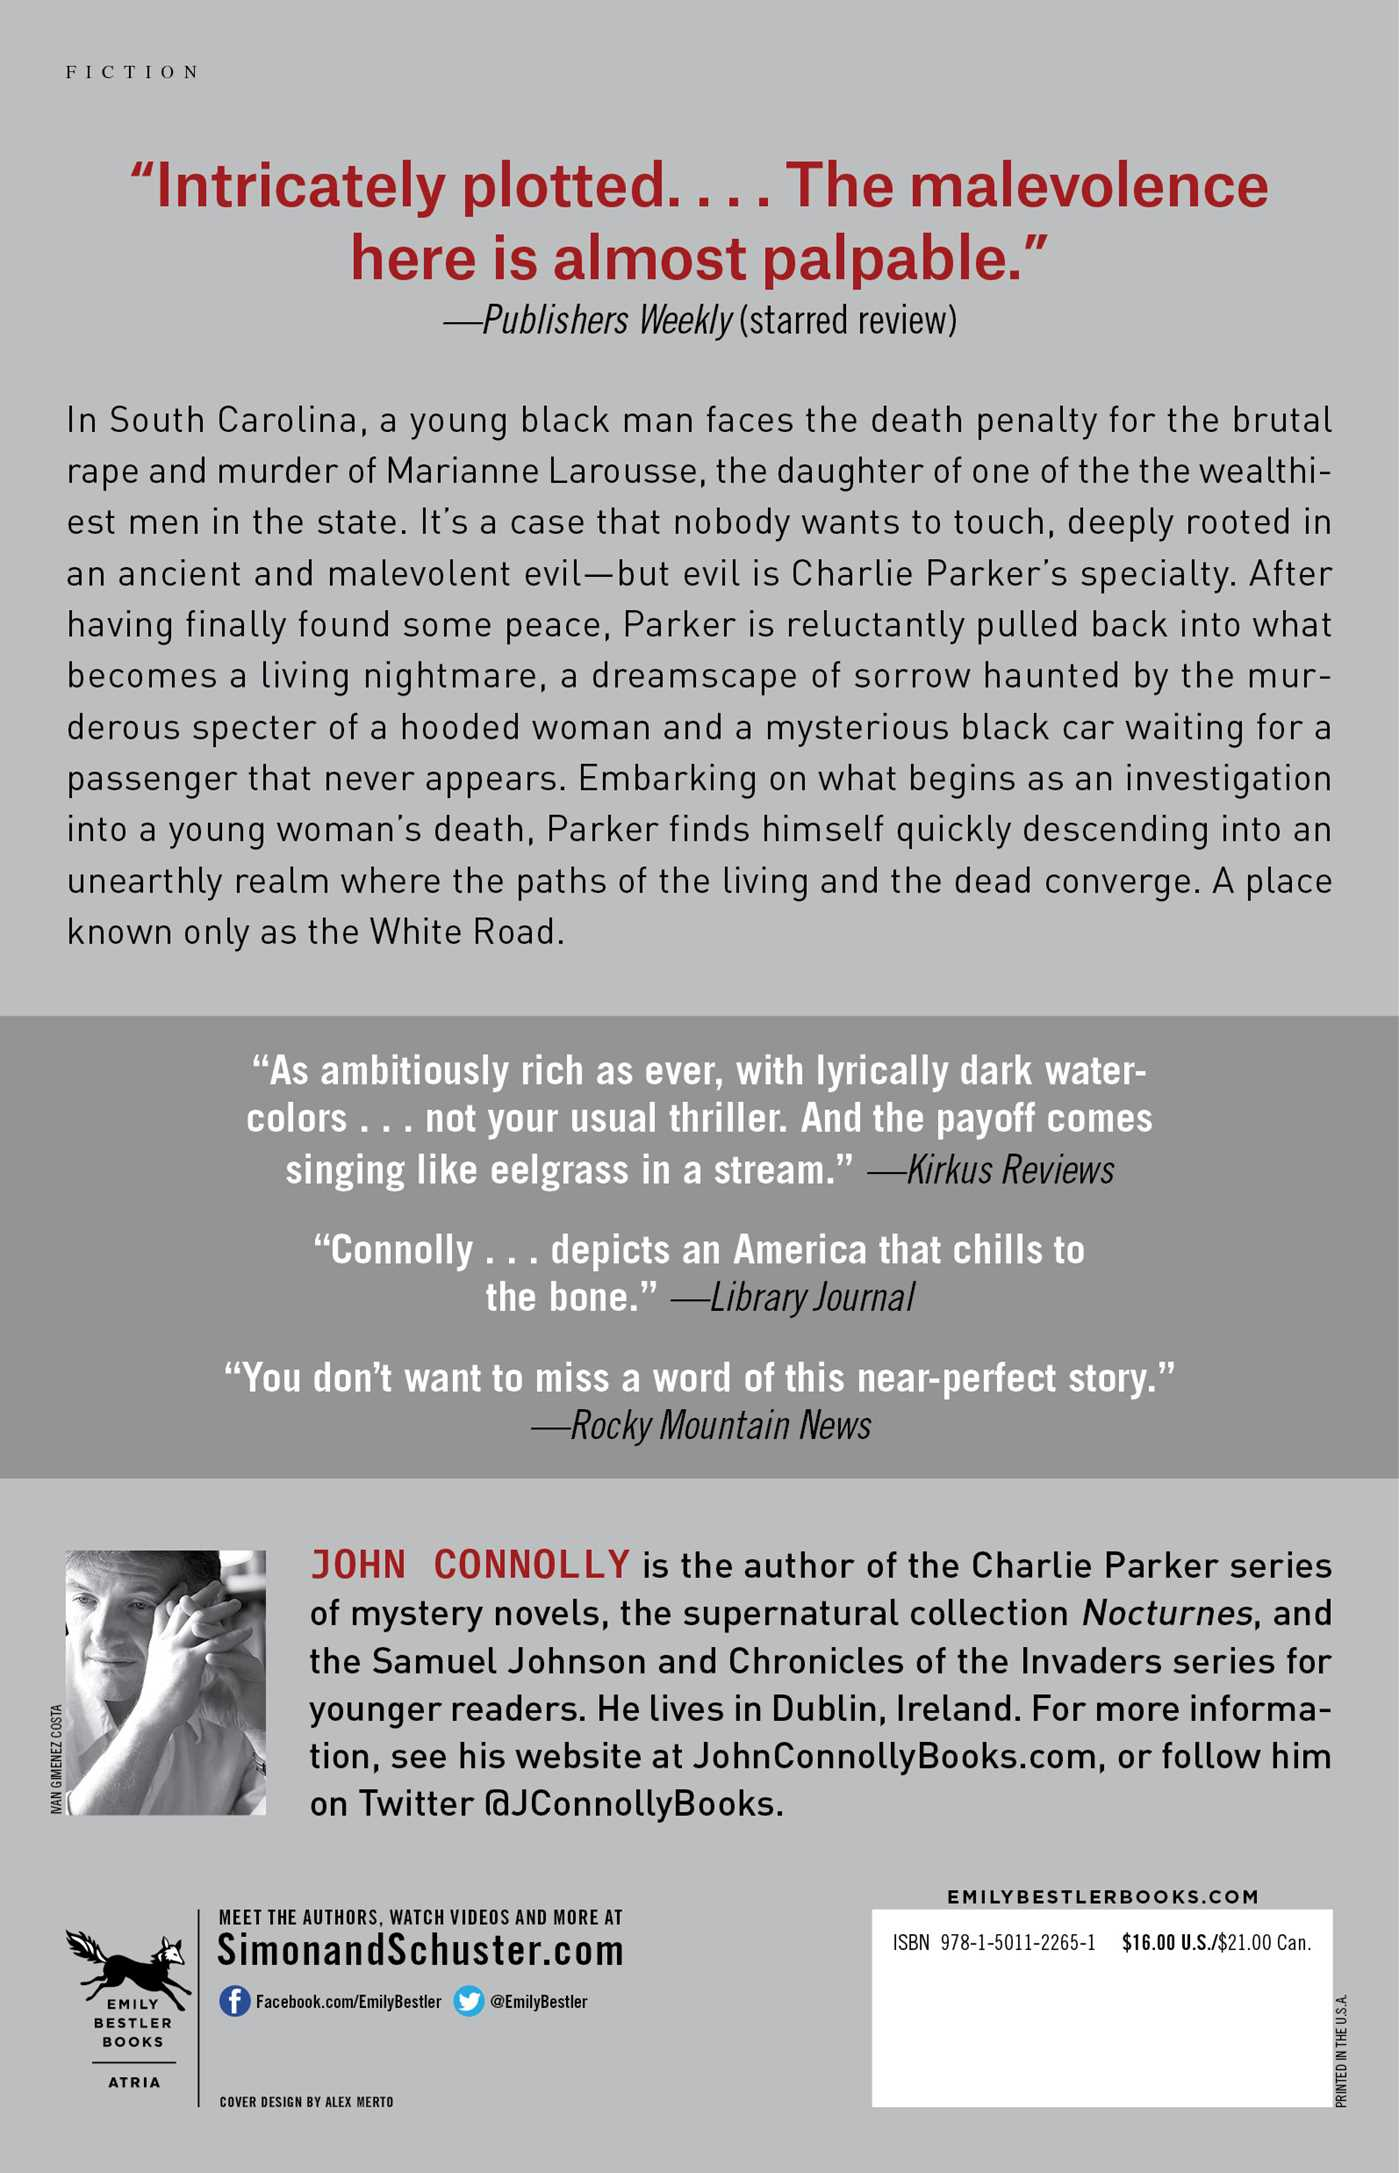 A guide to John Connolly's Charlie Parker